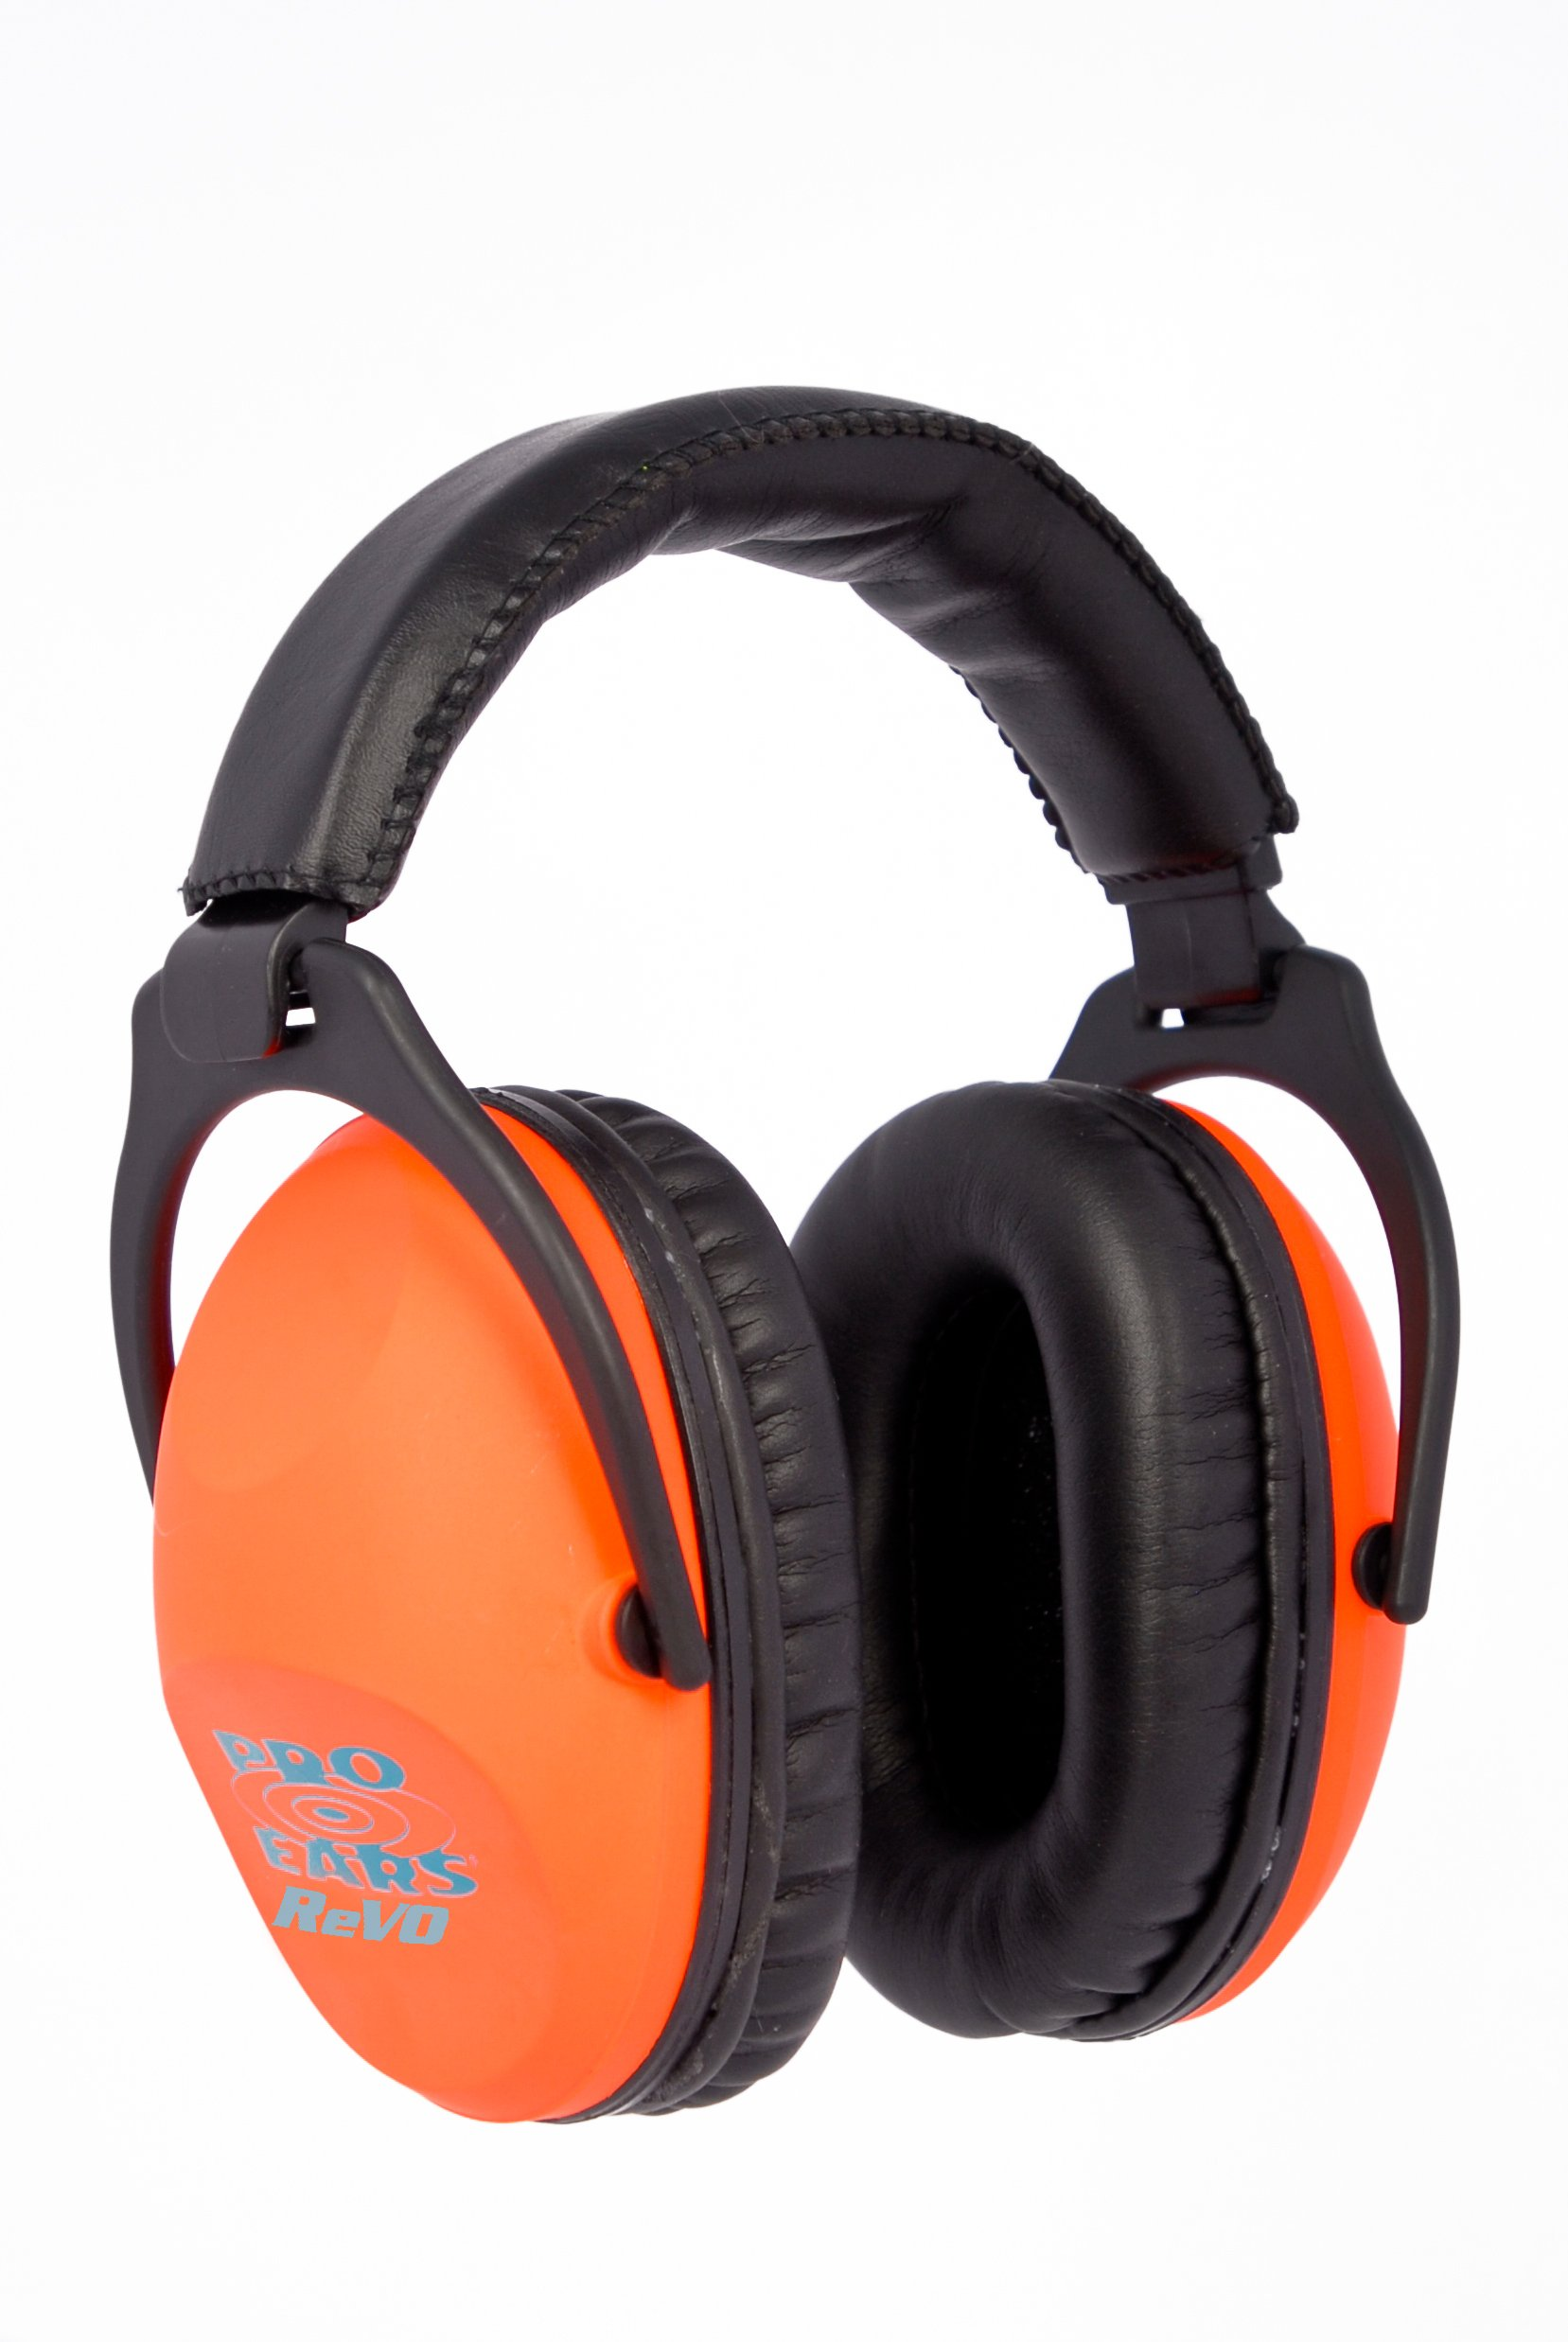 Pro Ears - ReVO - Hearing Protection - NRR 25 - Youth and Women Ear Muffs - Neon Orange